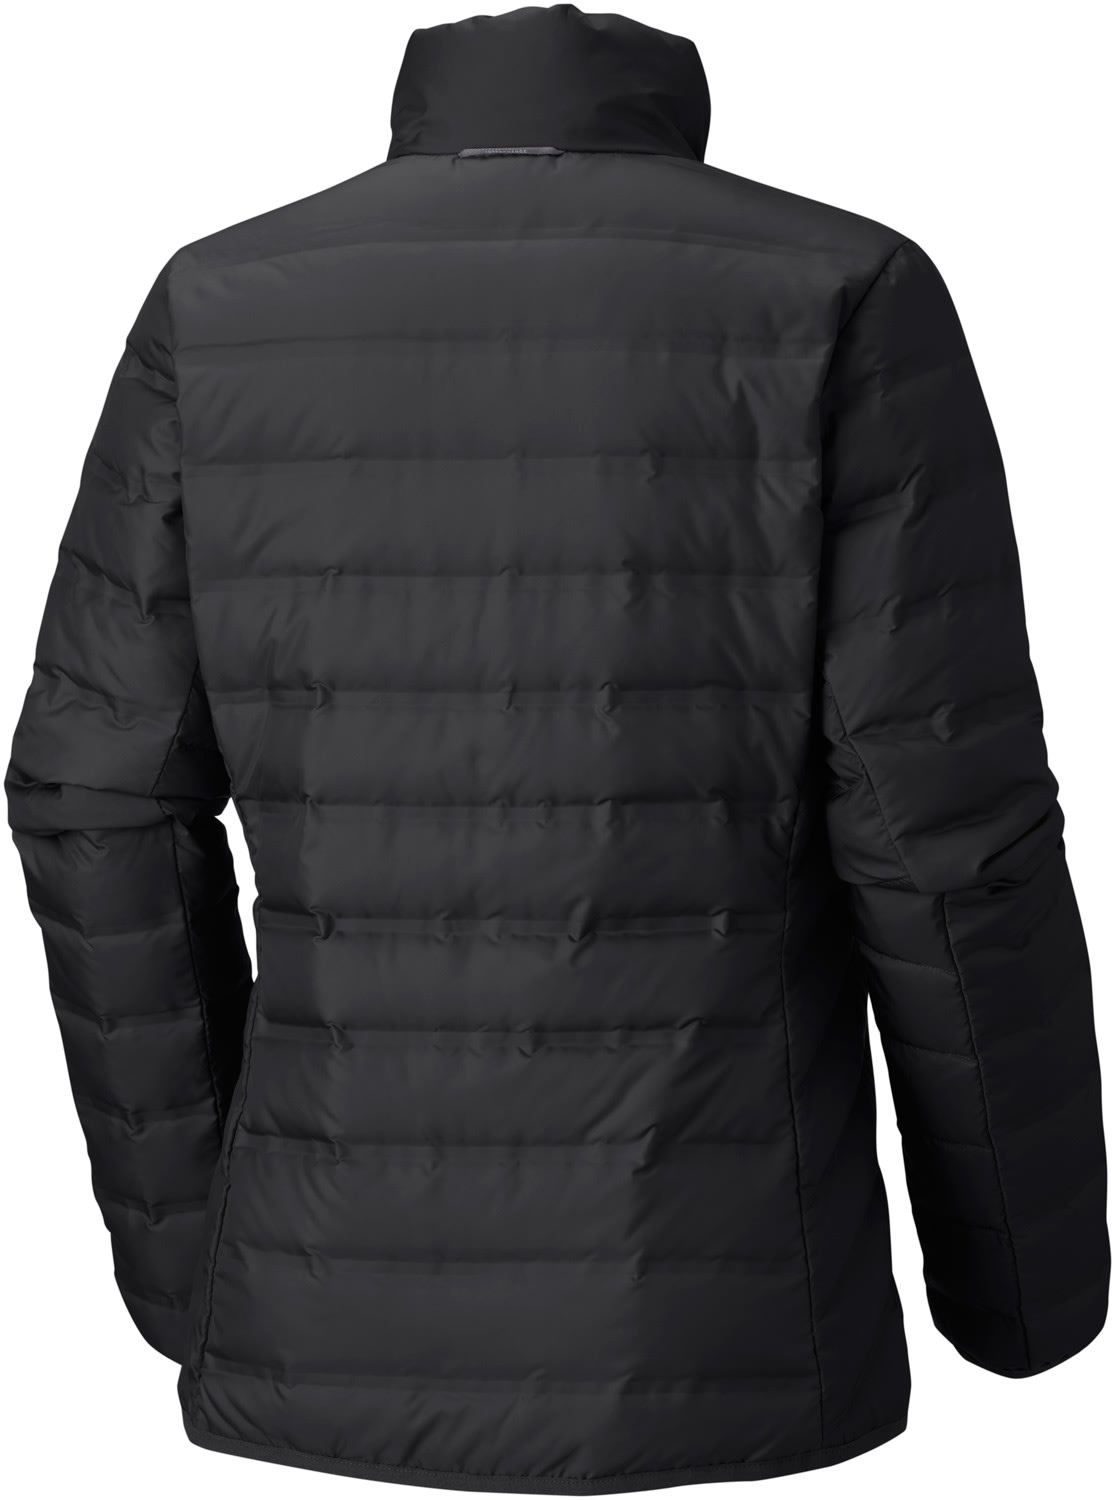 Columbia Lake 22 Down Jacket - Womens